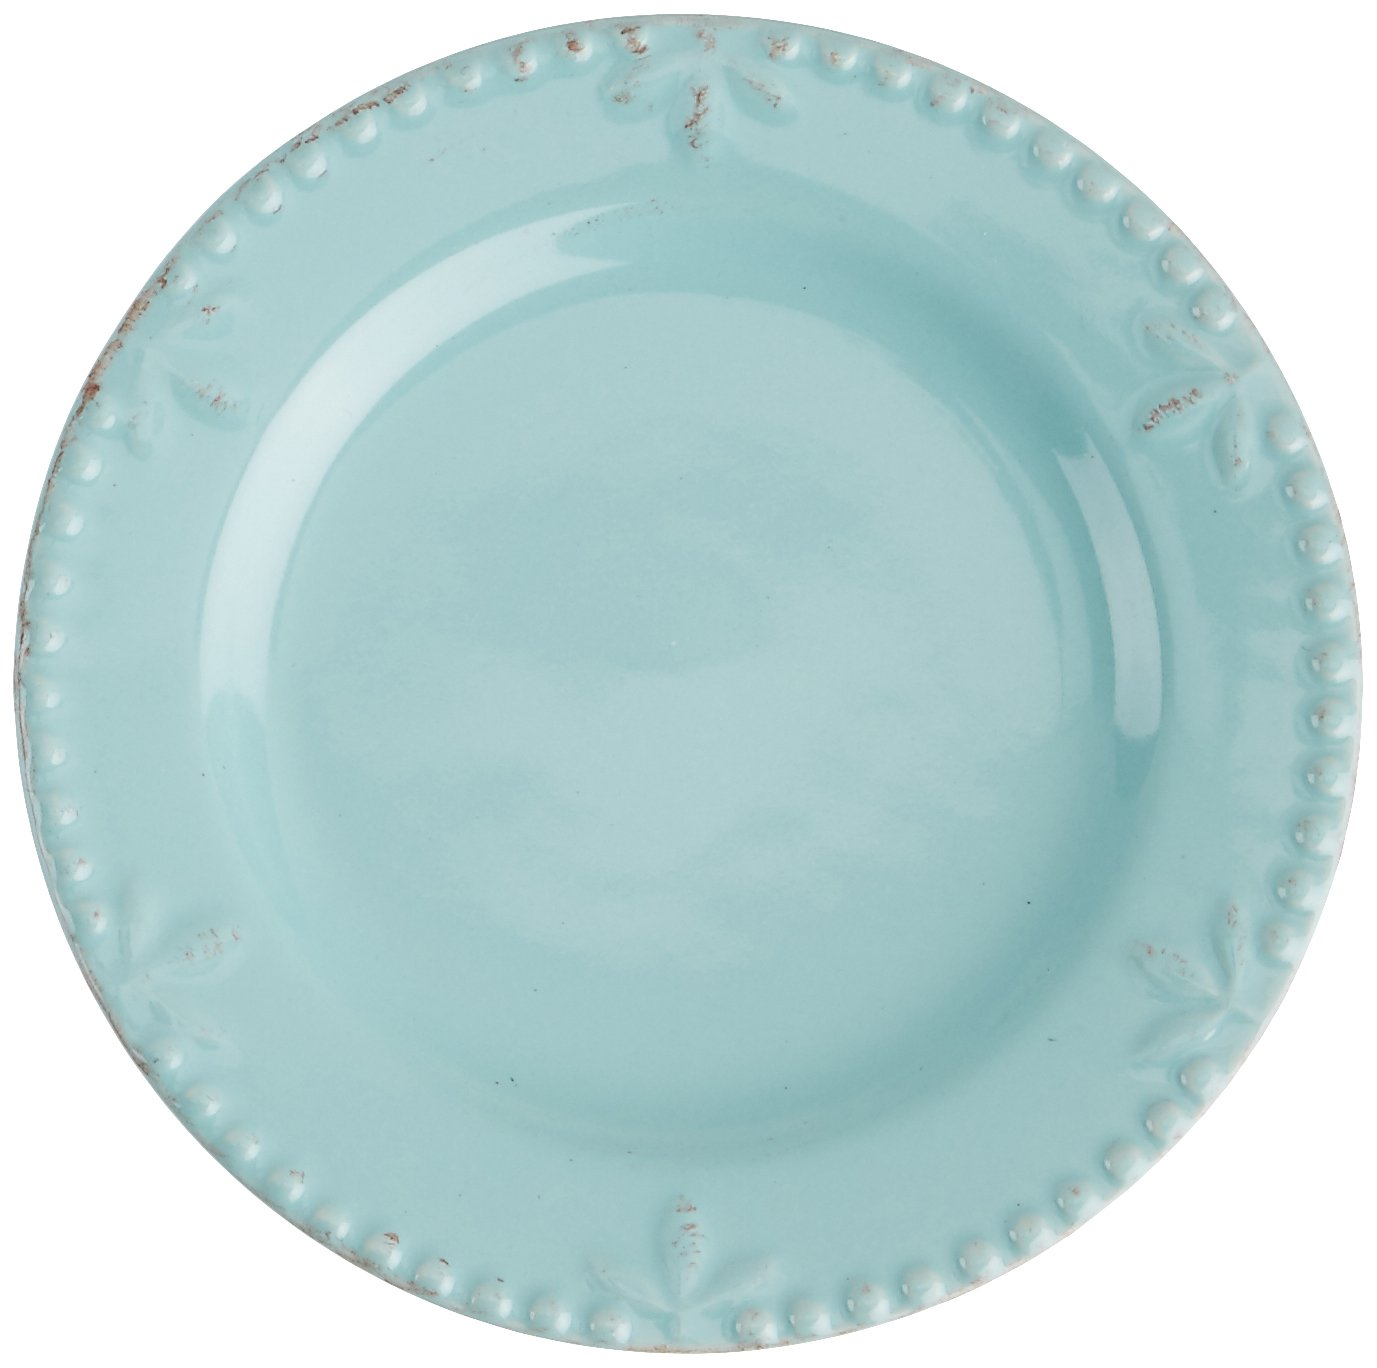 Signature Housewares Sorrento Collection 6'' Round Appetizer Plate, Aqua